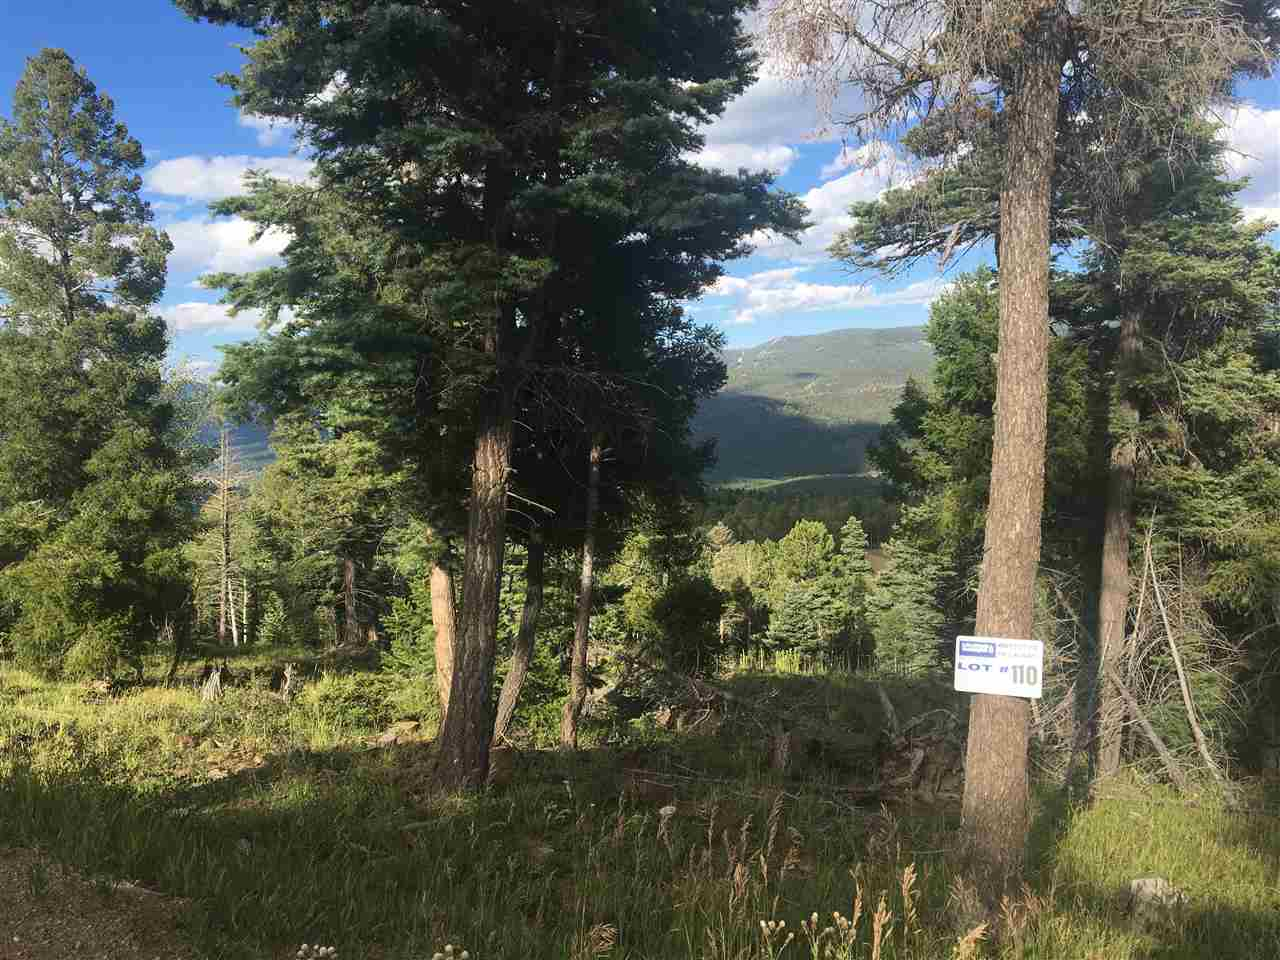 5 build-able acres on Zia Road. Monte Verde Lake, Eagle Nest Lake, Baldy Peak, and Touch-Me-Not Peak views.